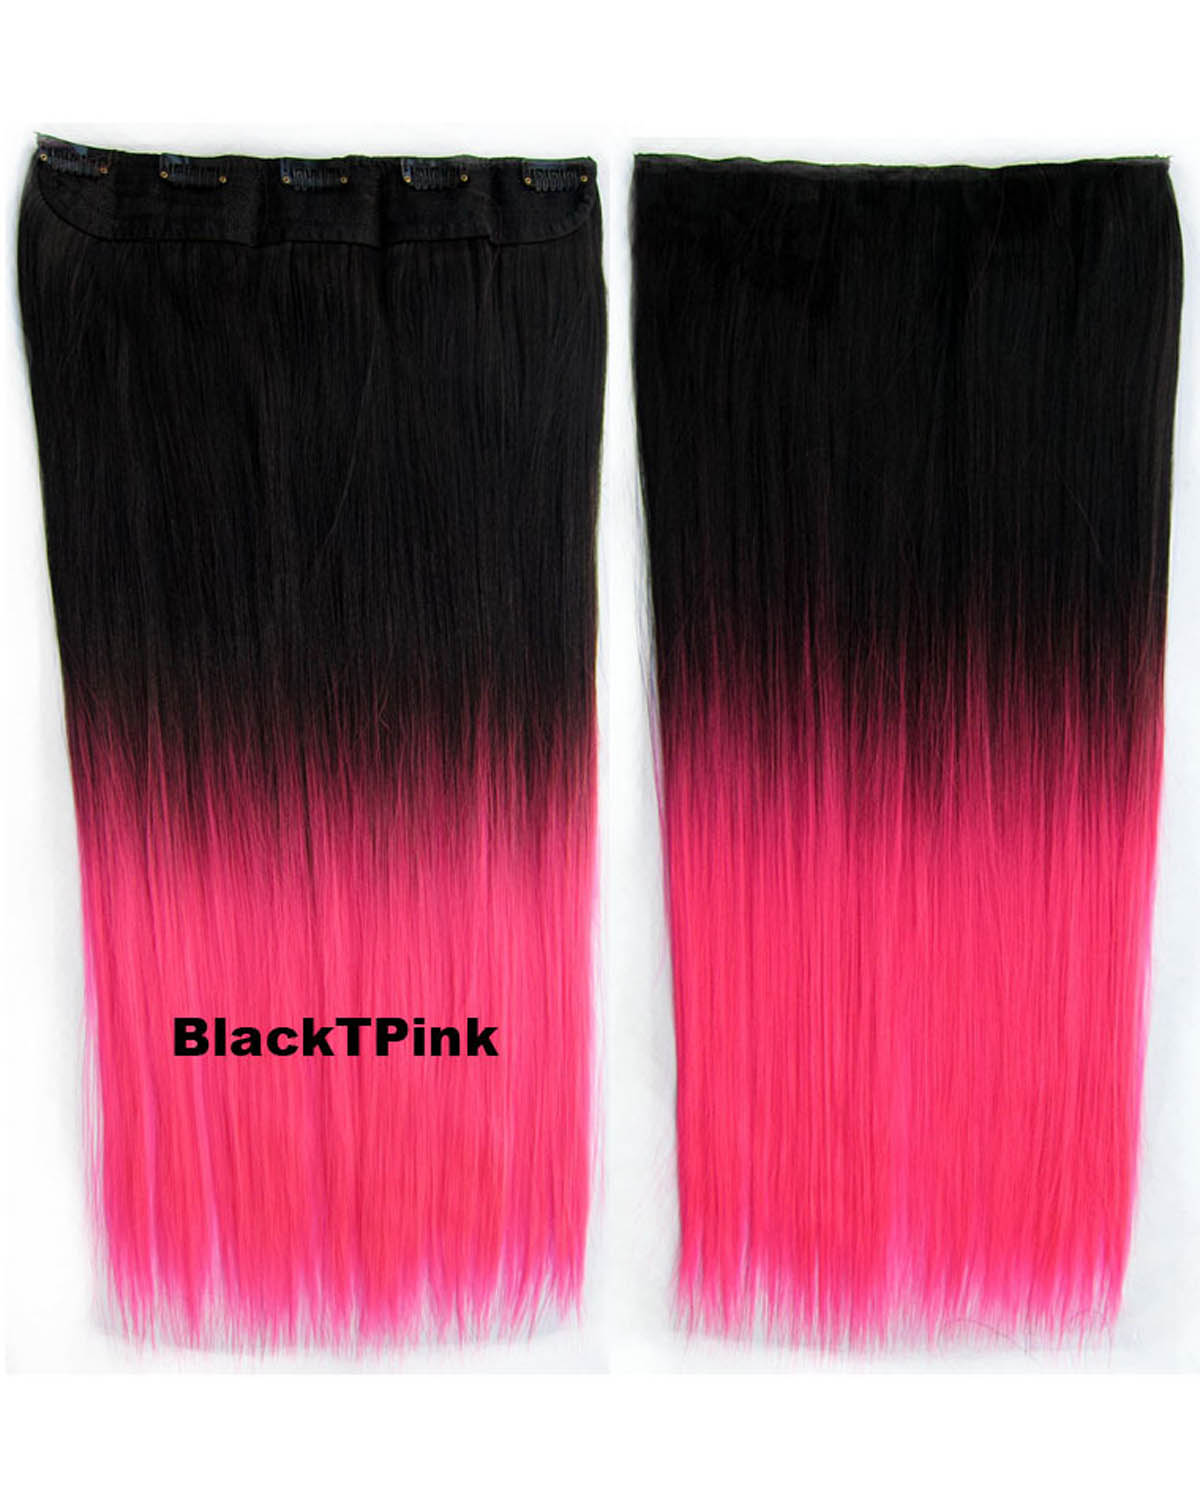 24 Inch Female Fashionable and Silky  Long Straight One Piece 5 Clips Clip in Synthetic Hair Extension Ombre  GS-666  BlackTpink